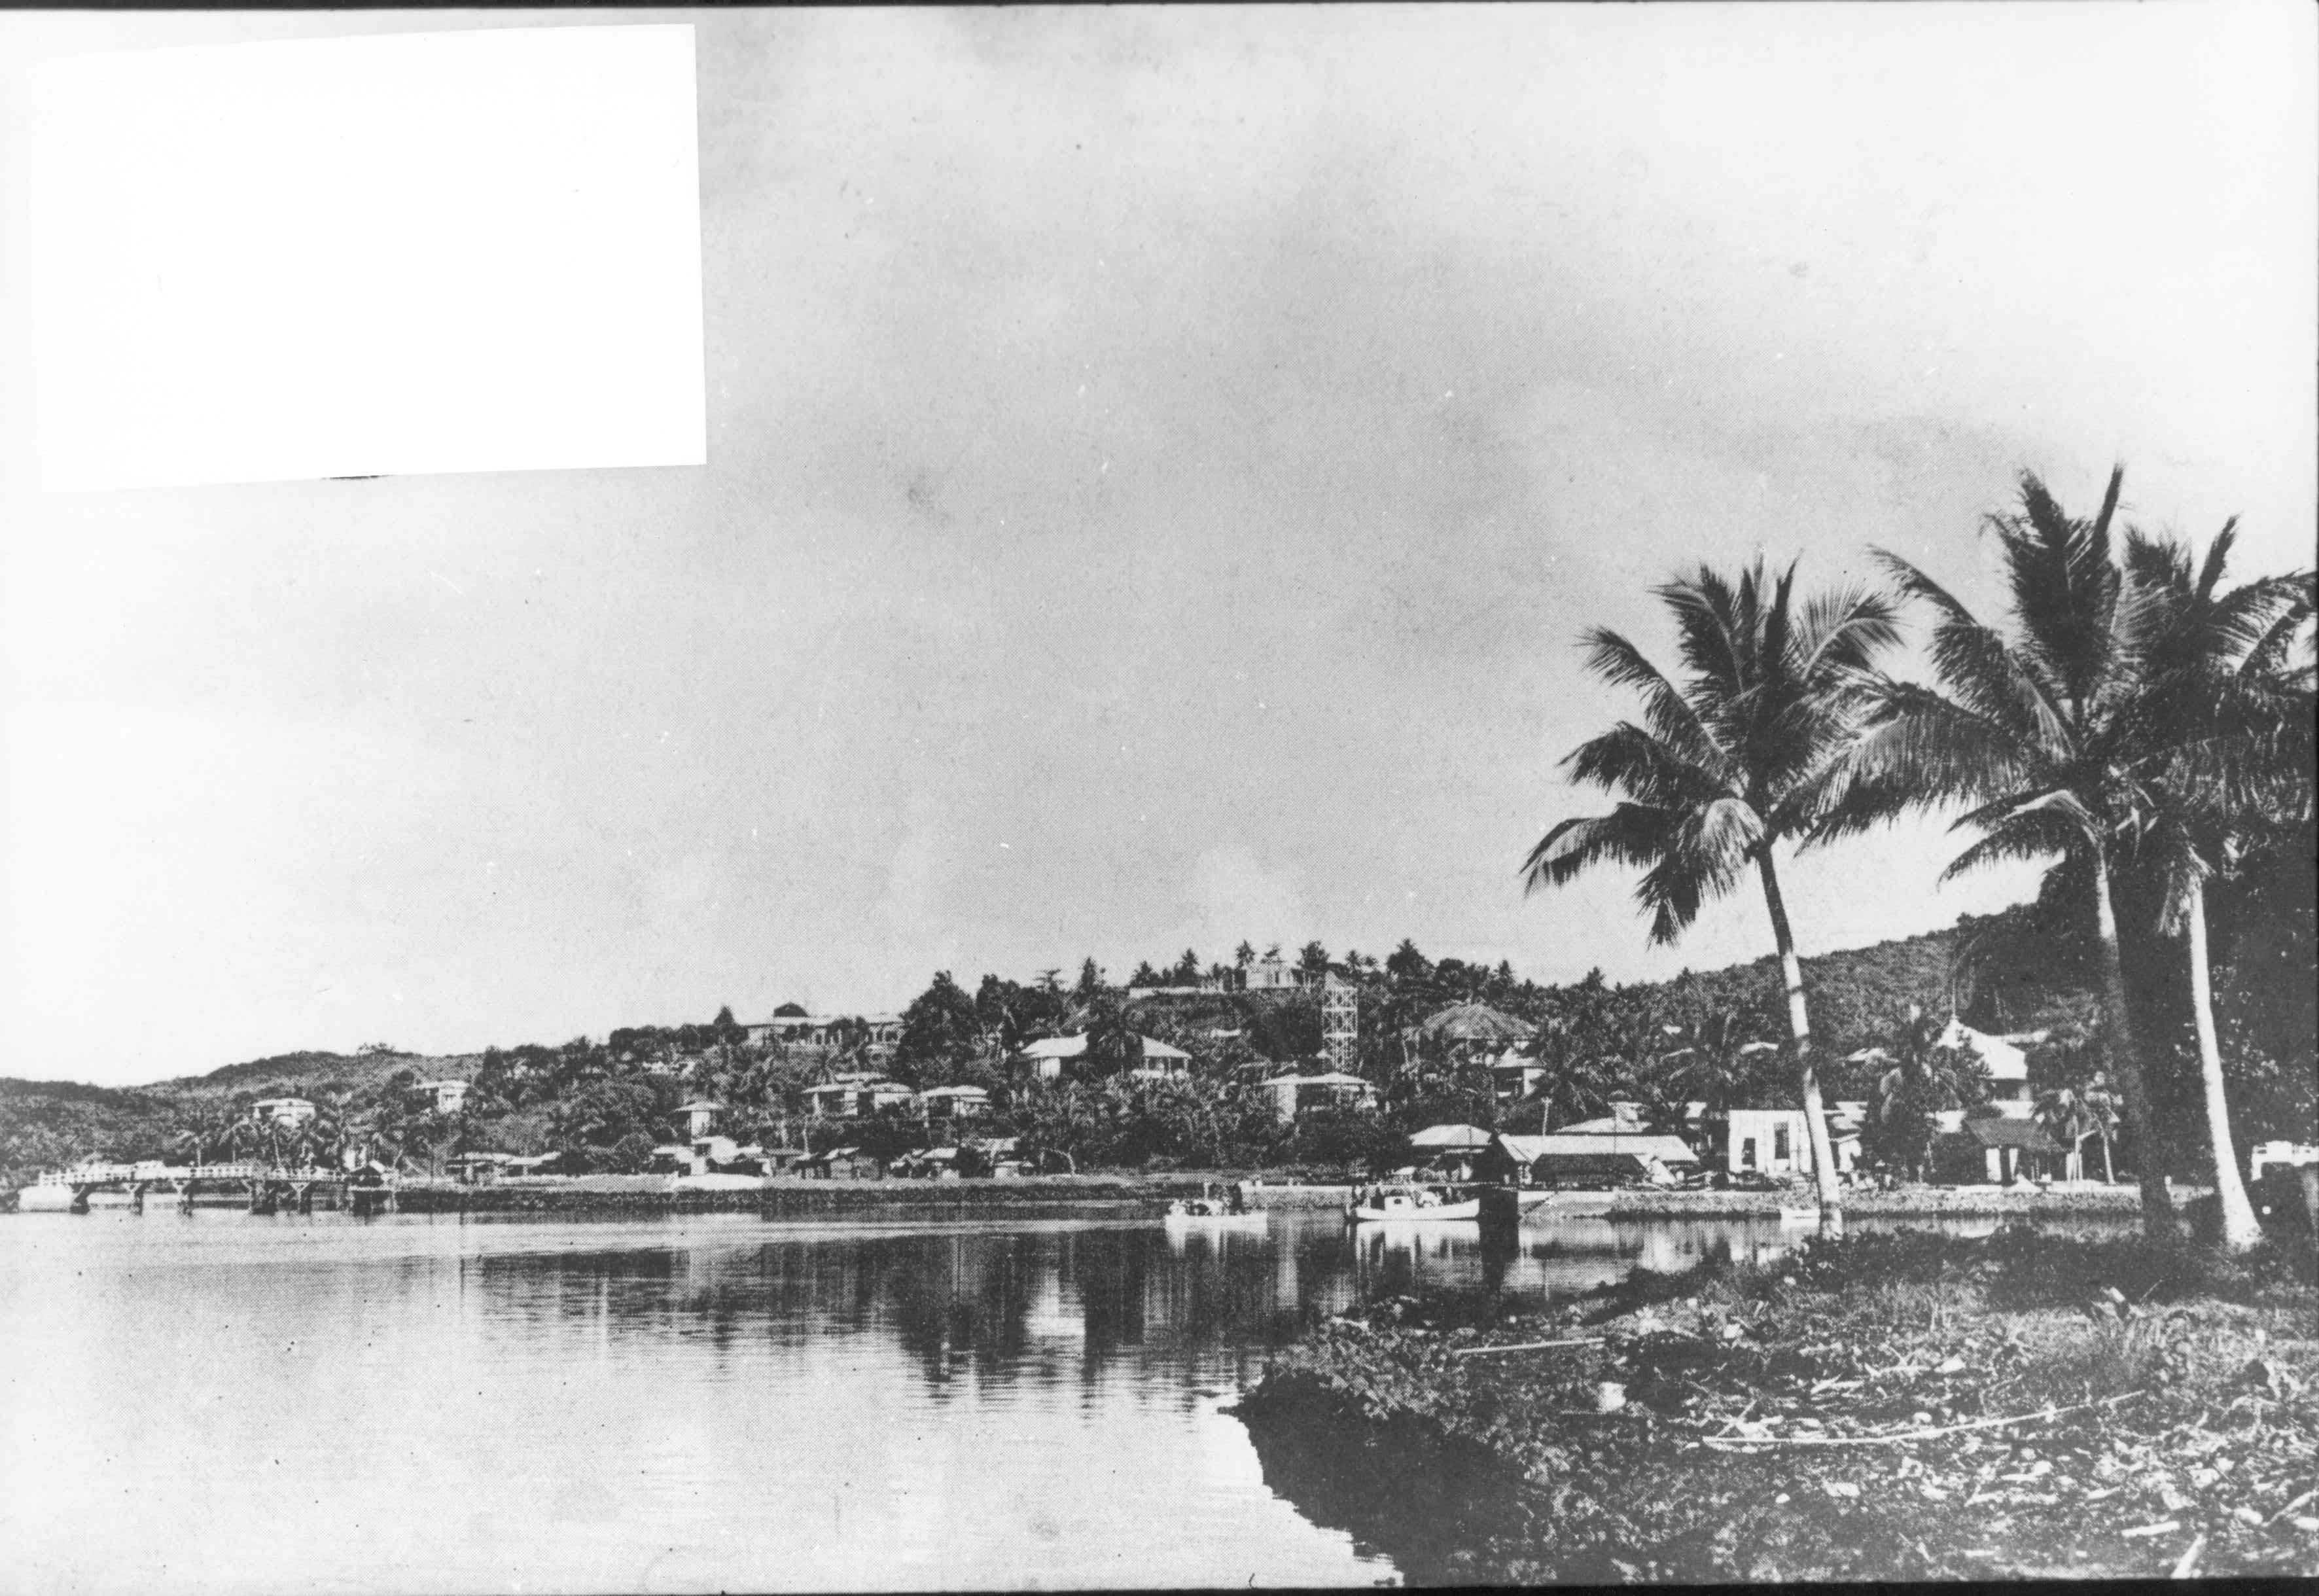 Yap Related Pictures from the National Archives  Located via the